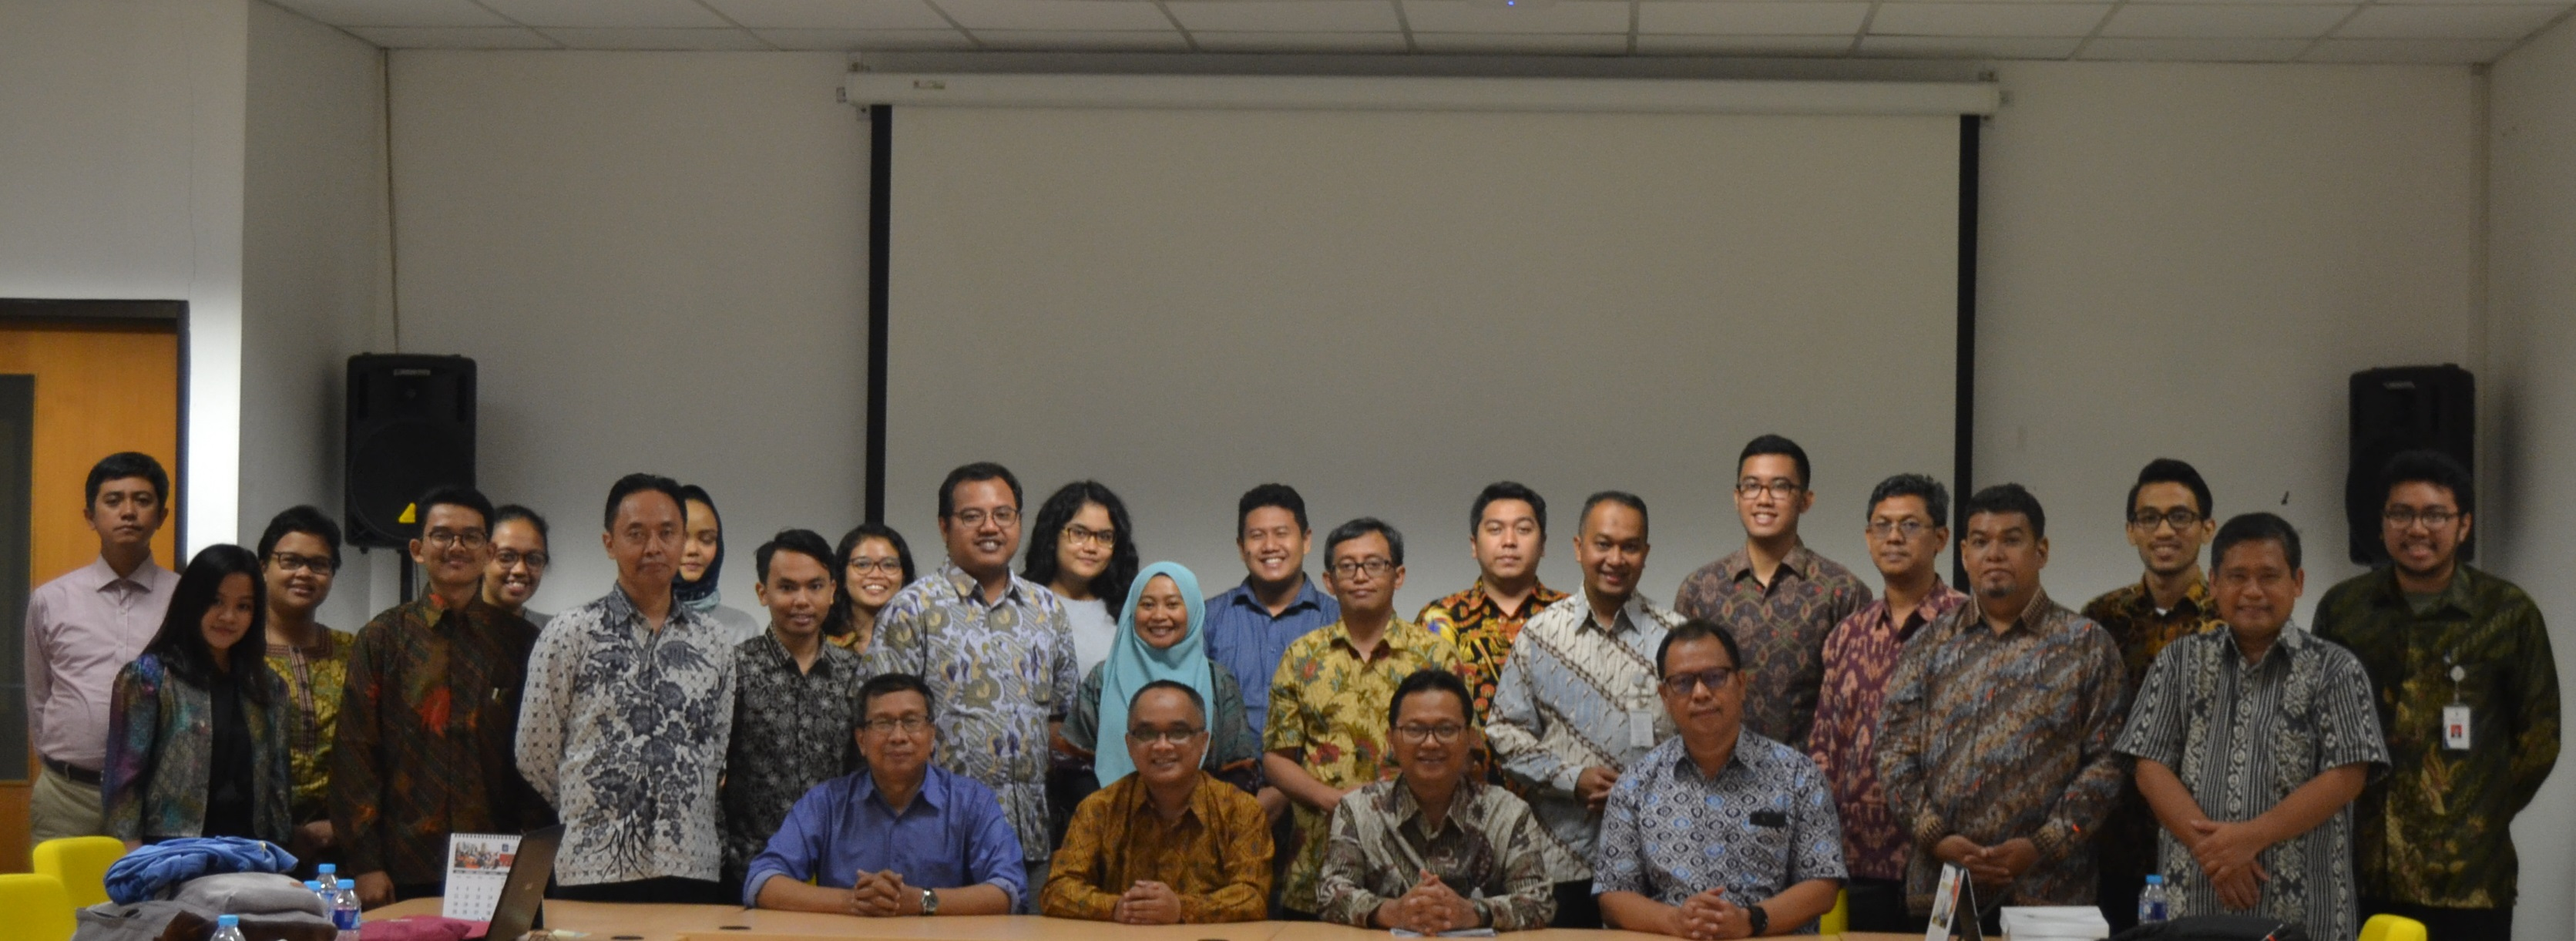 Focus Group Discussion of IIS and PPN/Bappenas: The Formulation of Indonesia's Foreign Policy in 2020-2024